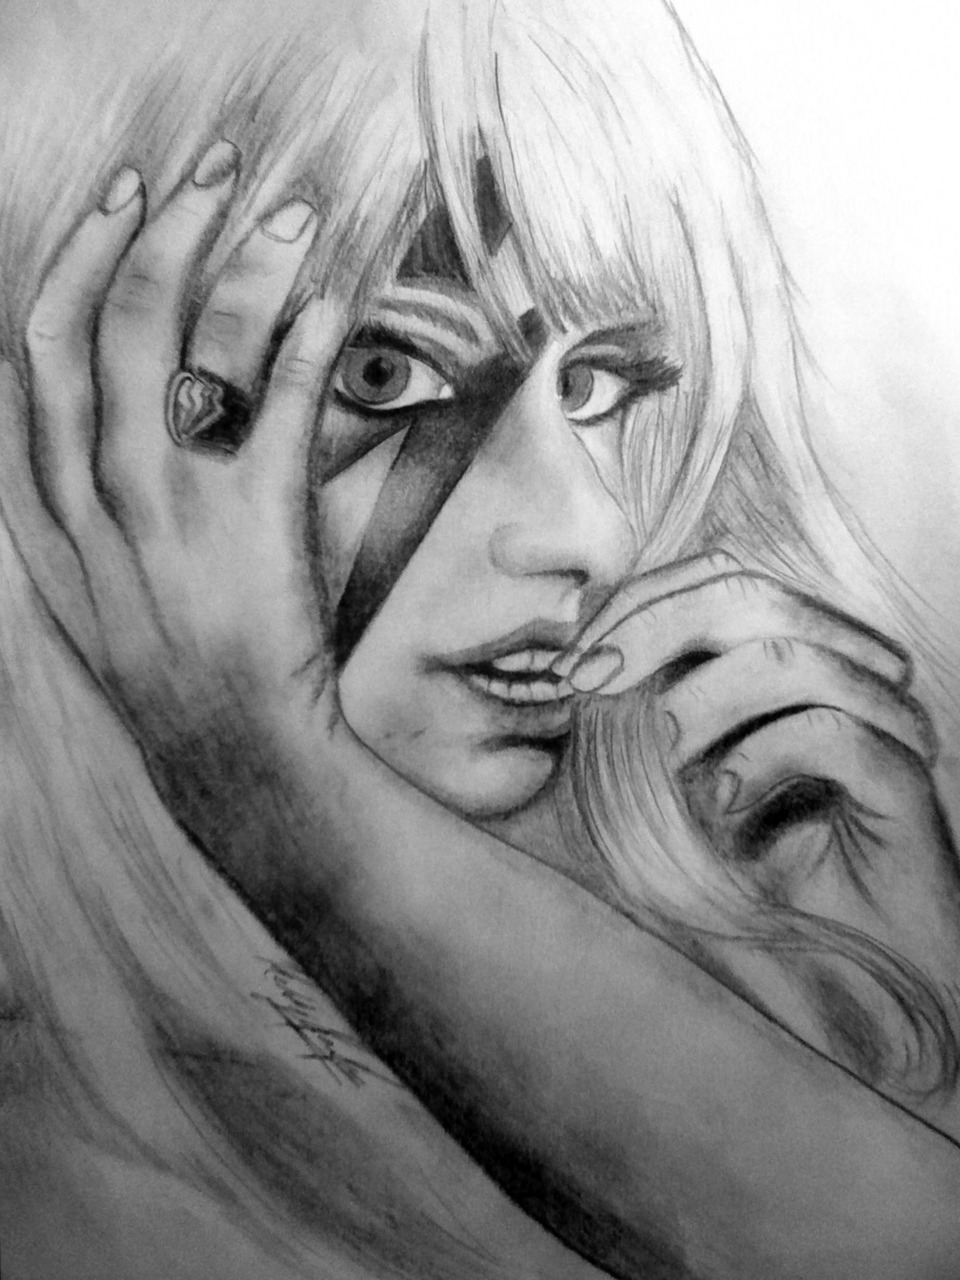 Decided to draw Lady GaGa because she is just too awesome not to. Graphite.